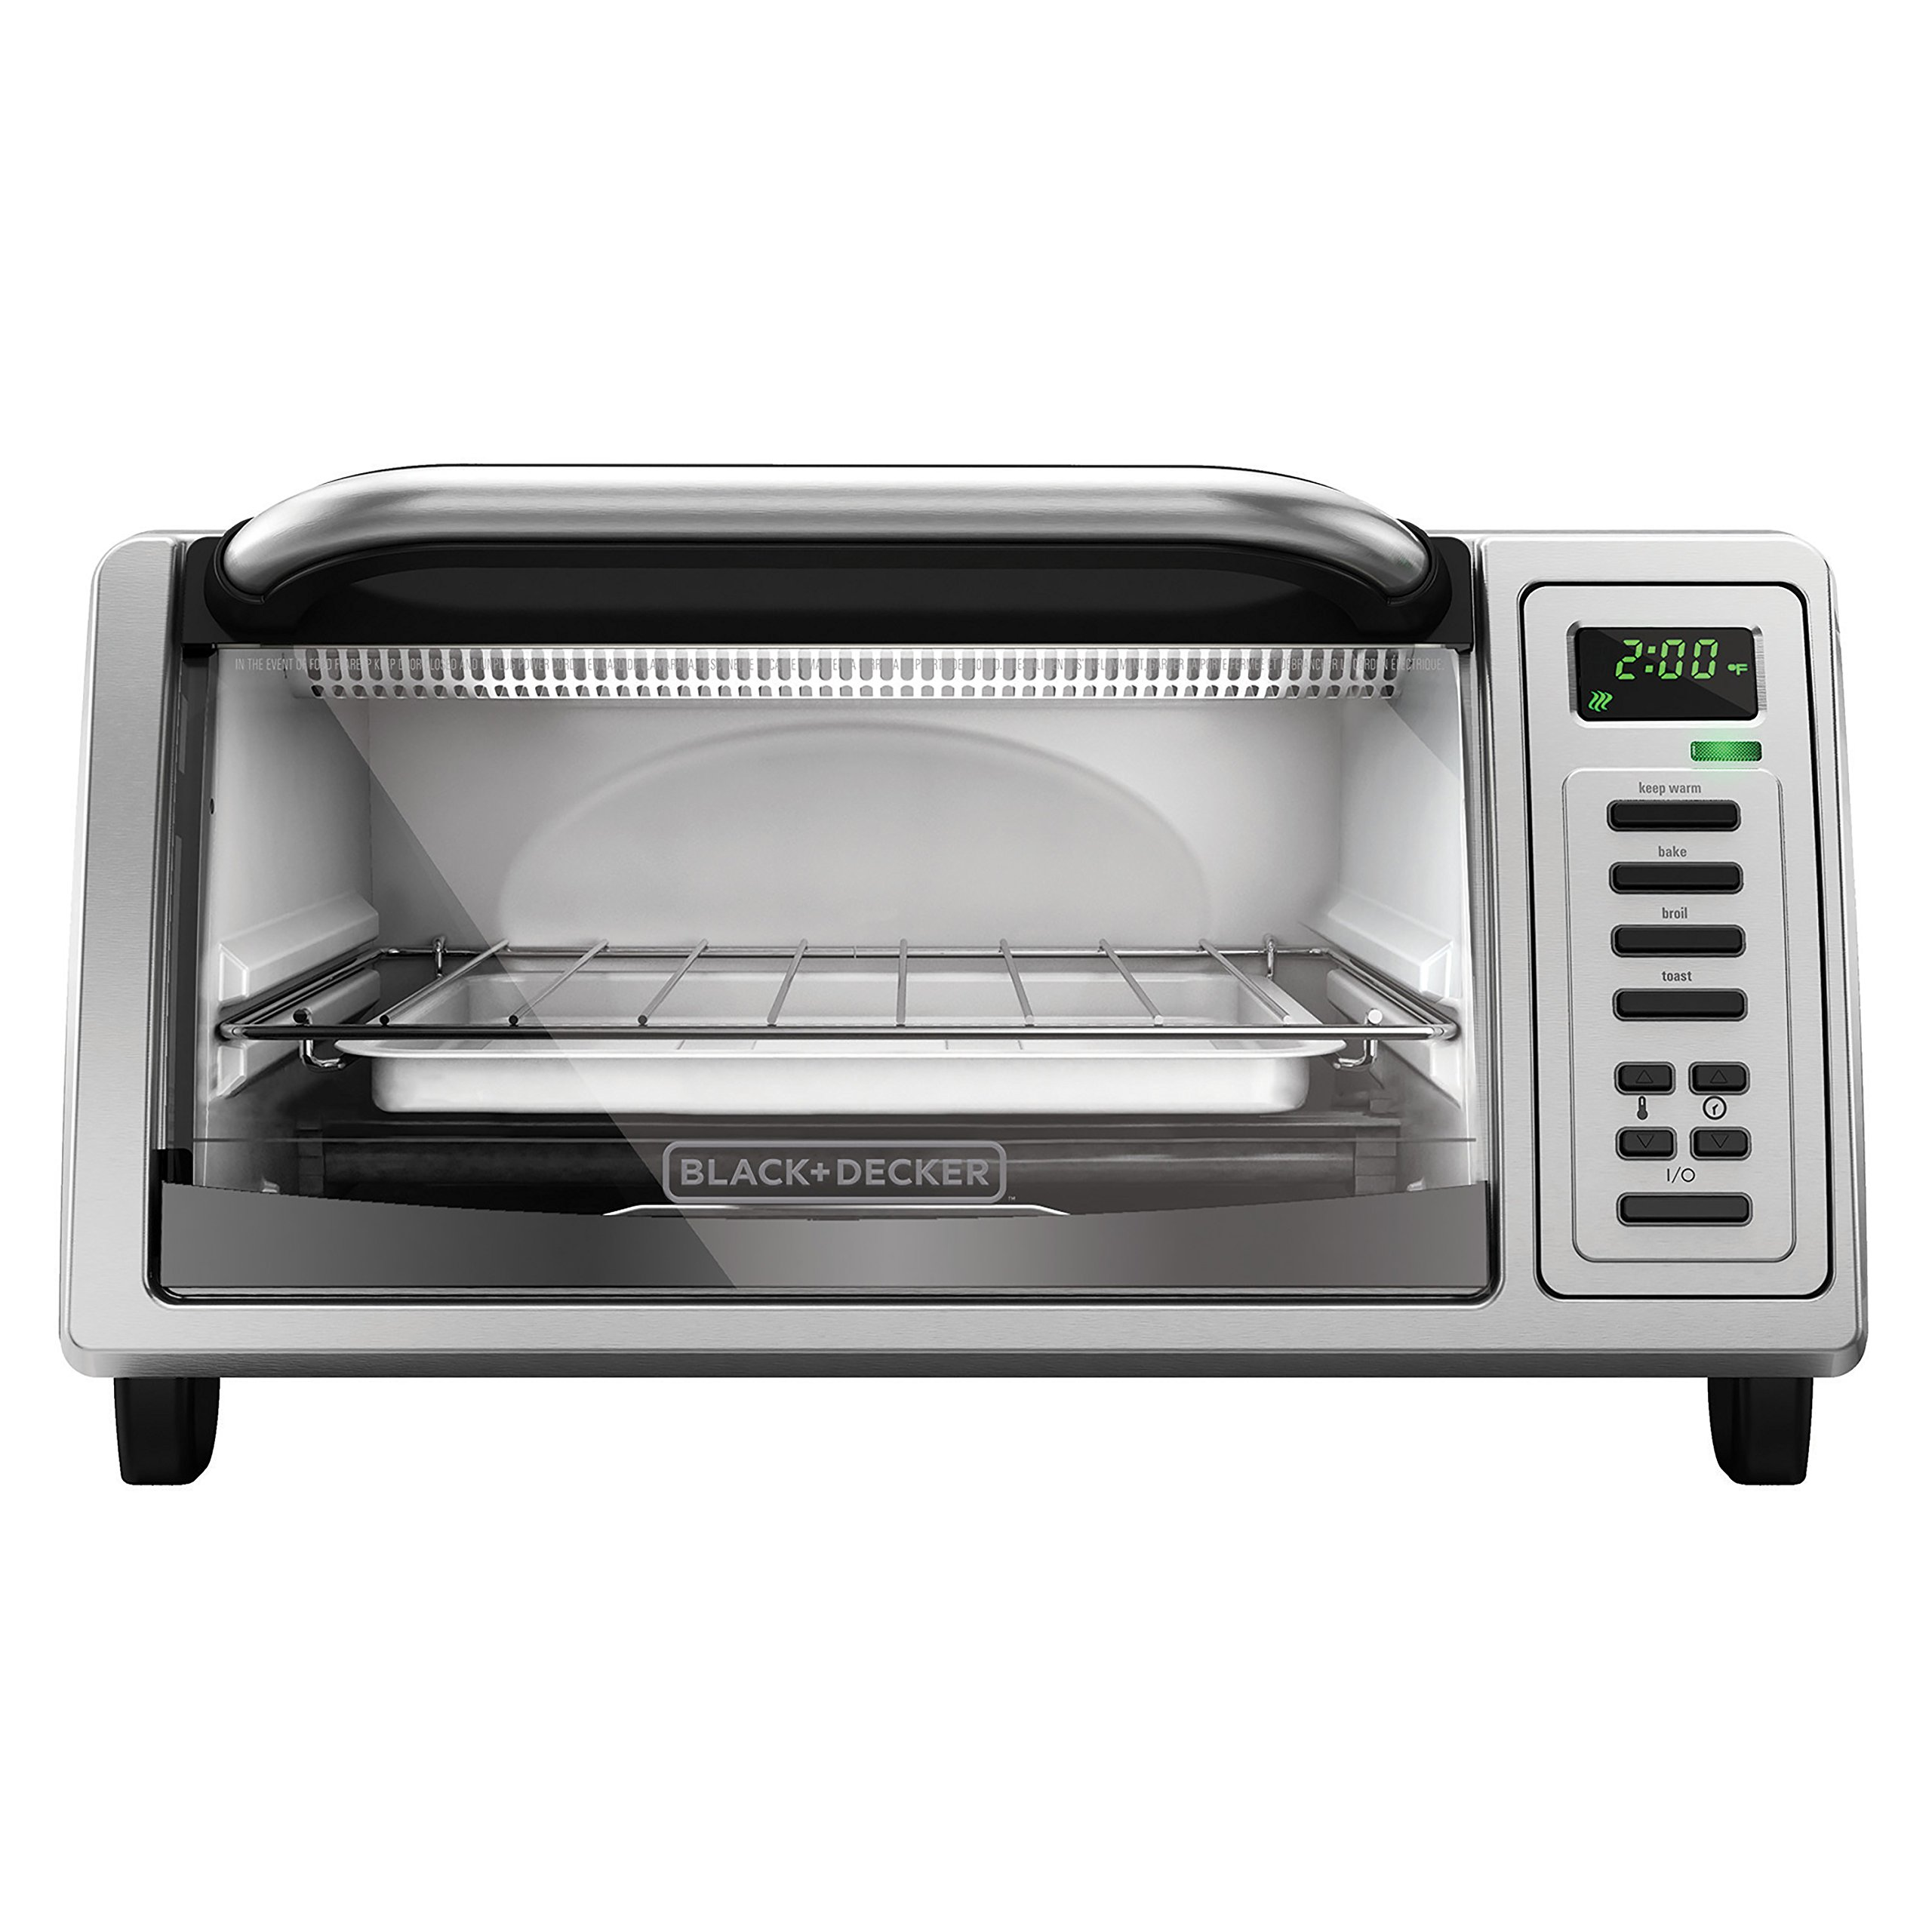 Black and Decker TO1380SS 4-Slice Toaster Oven Platinum | eBay